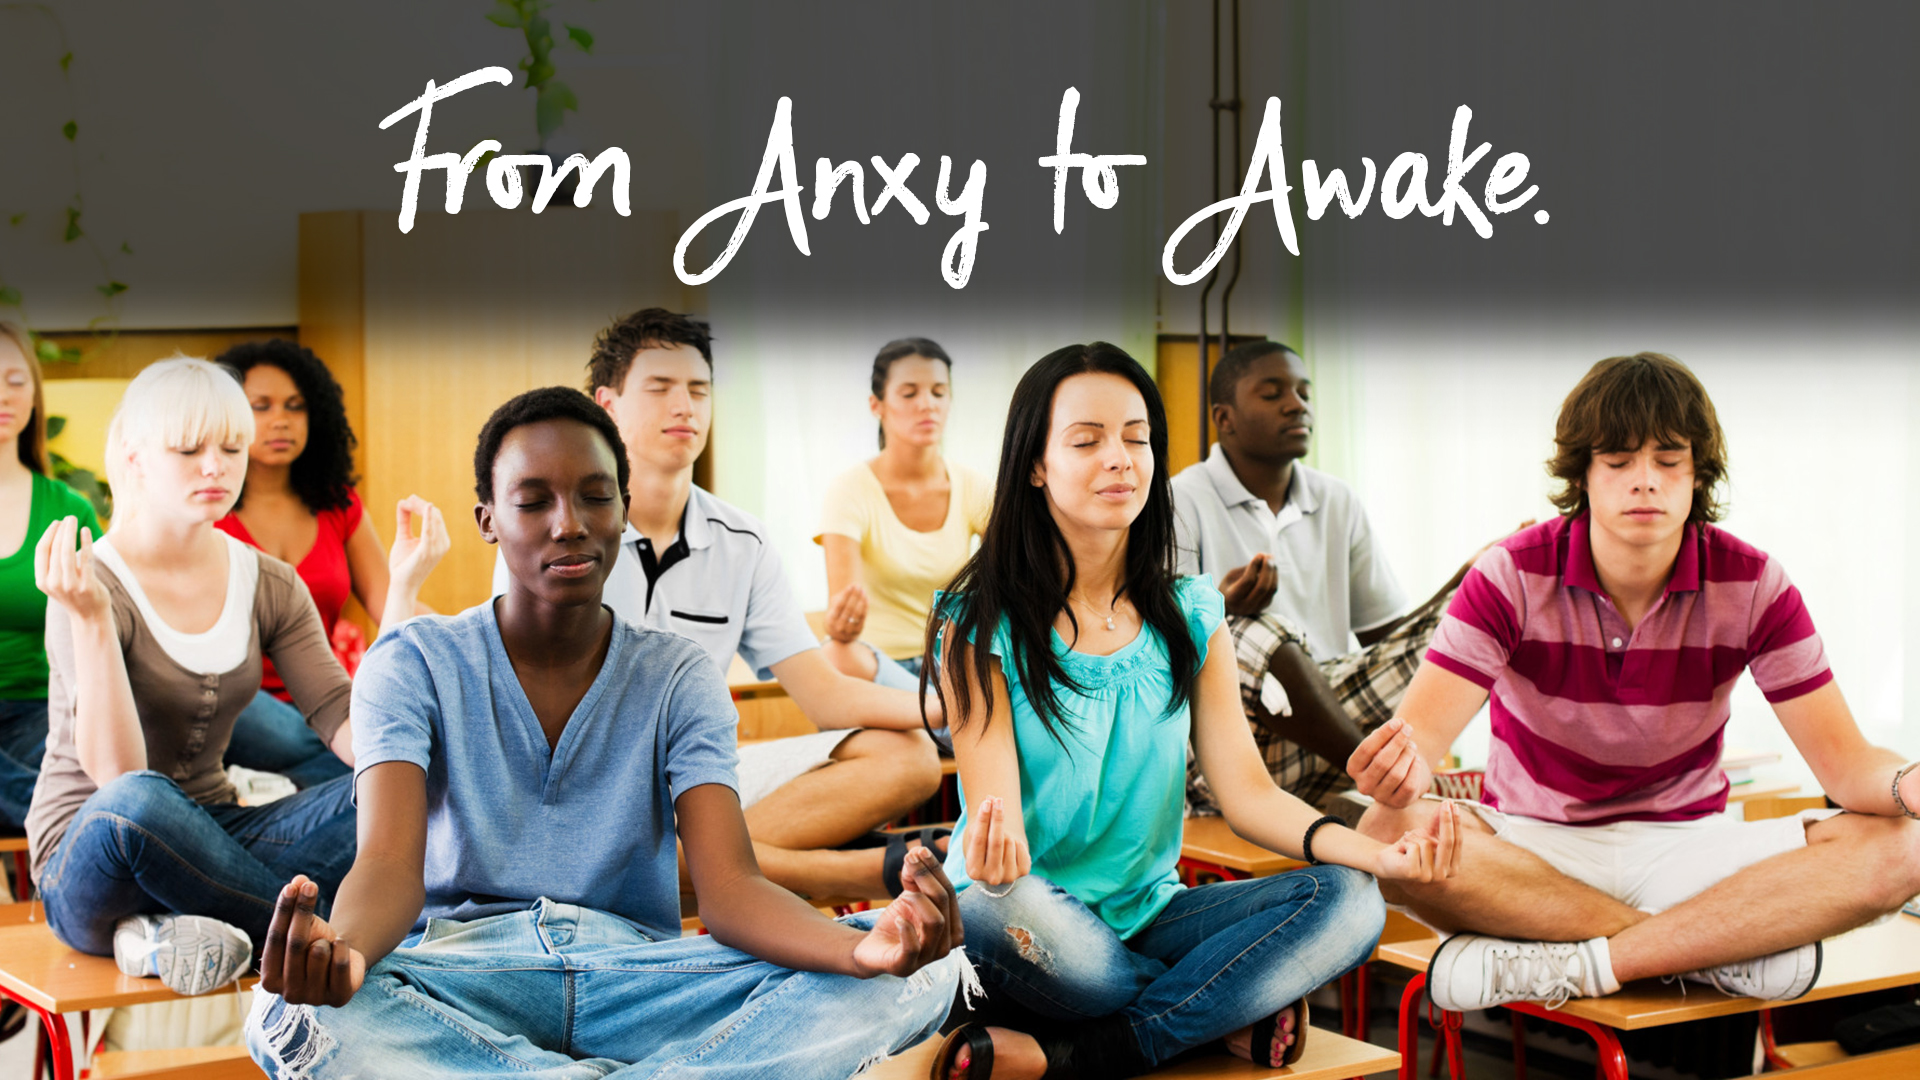 From Anxy to Awake